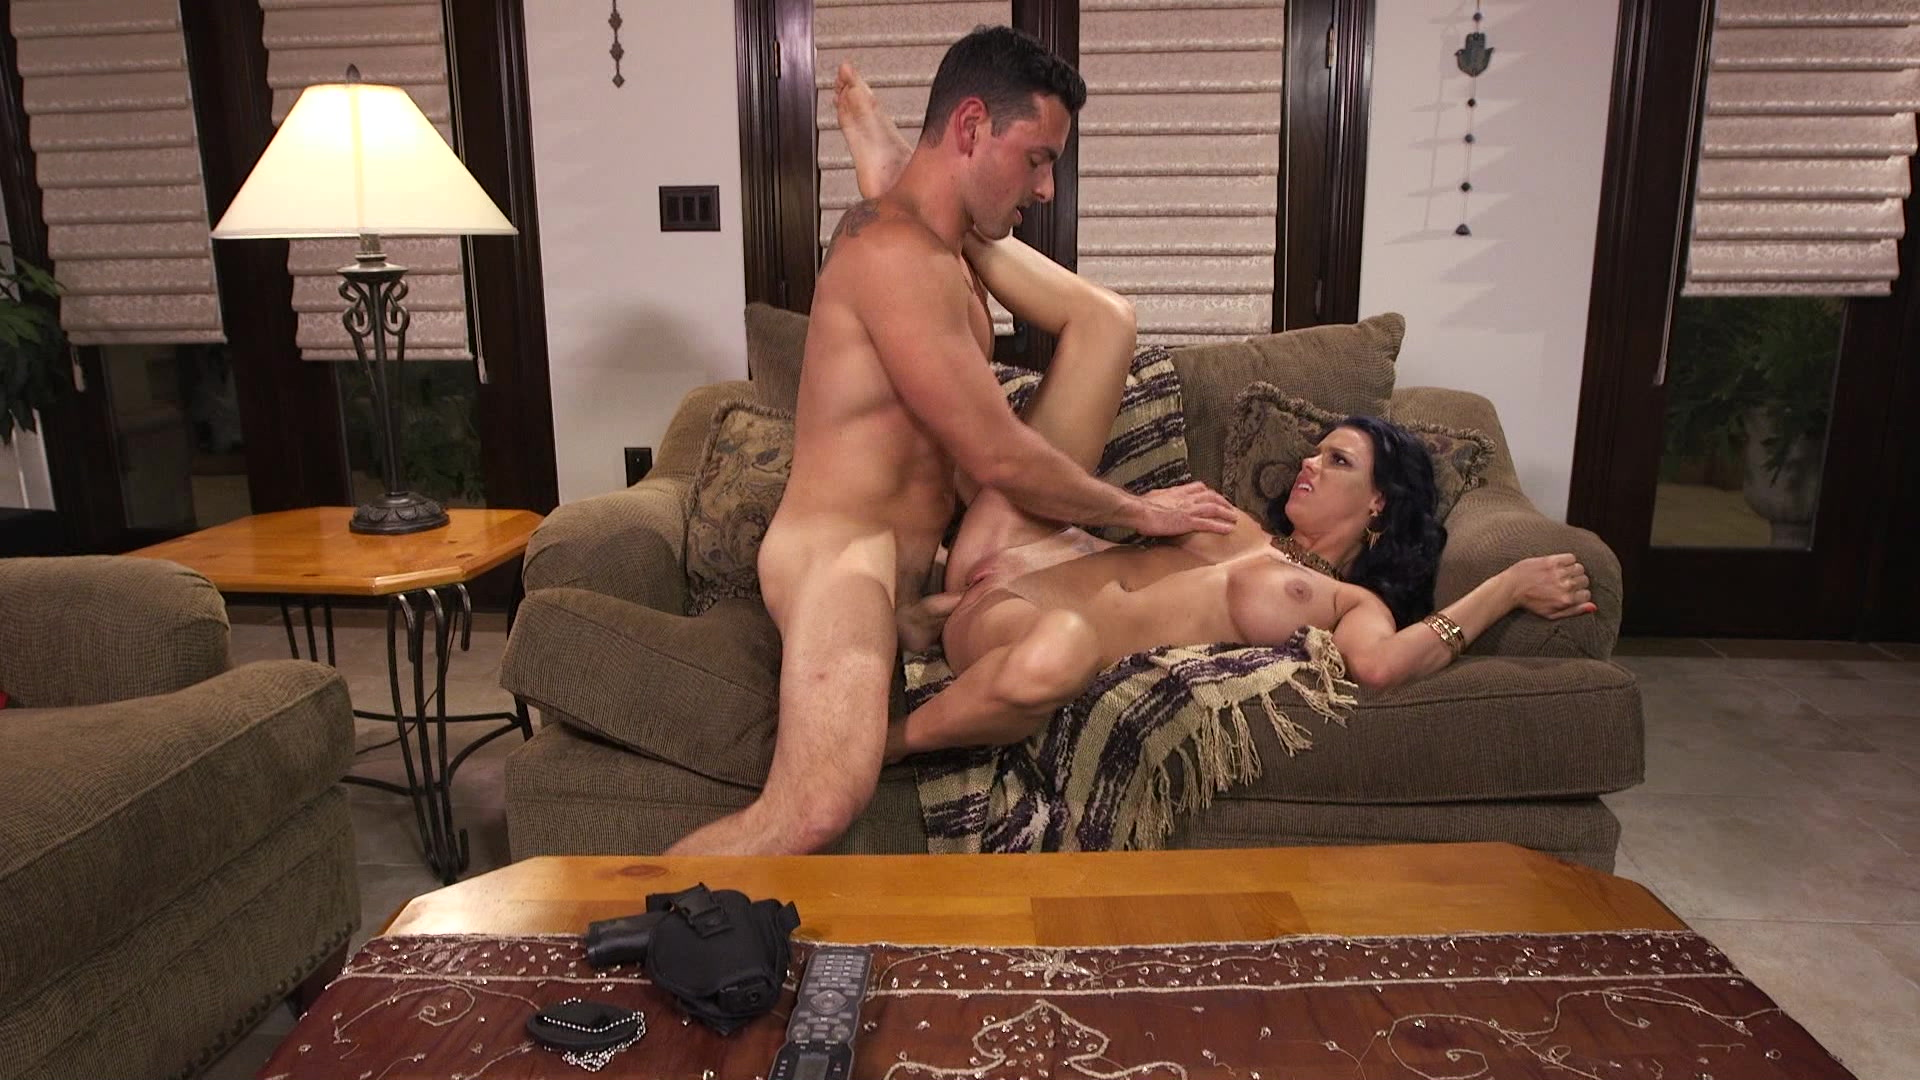 Busty Brunette Beauty Peta Jensen Sucks and Fucks Ryan Driller Starring: Ryan Driller Peta Jensen Length: 27 min